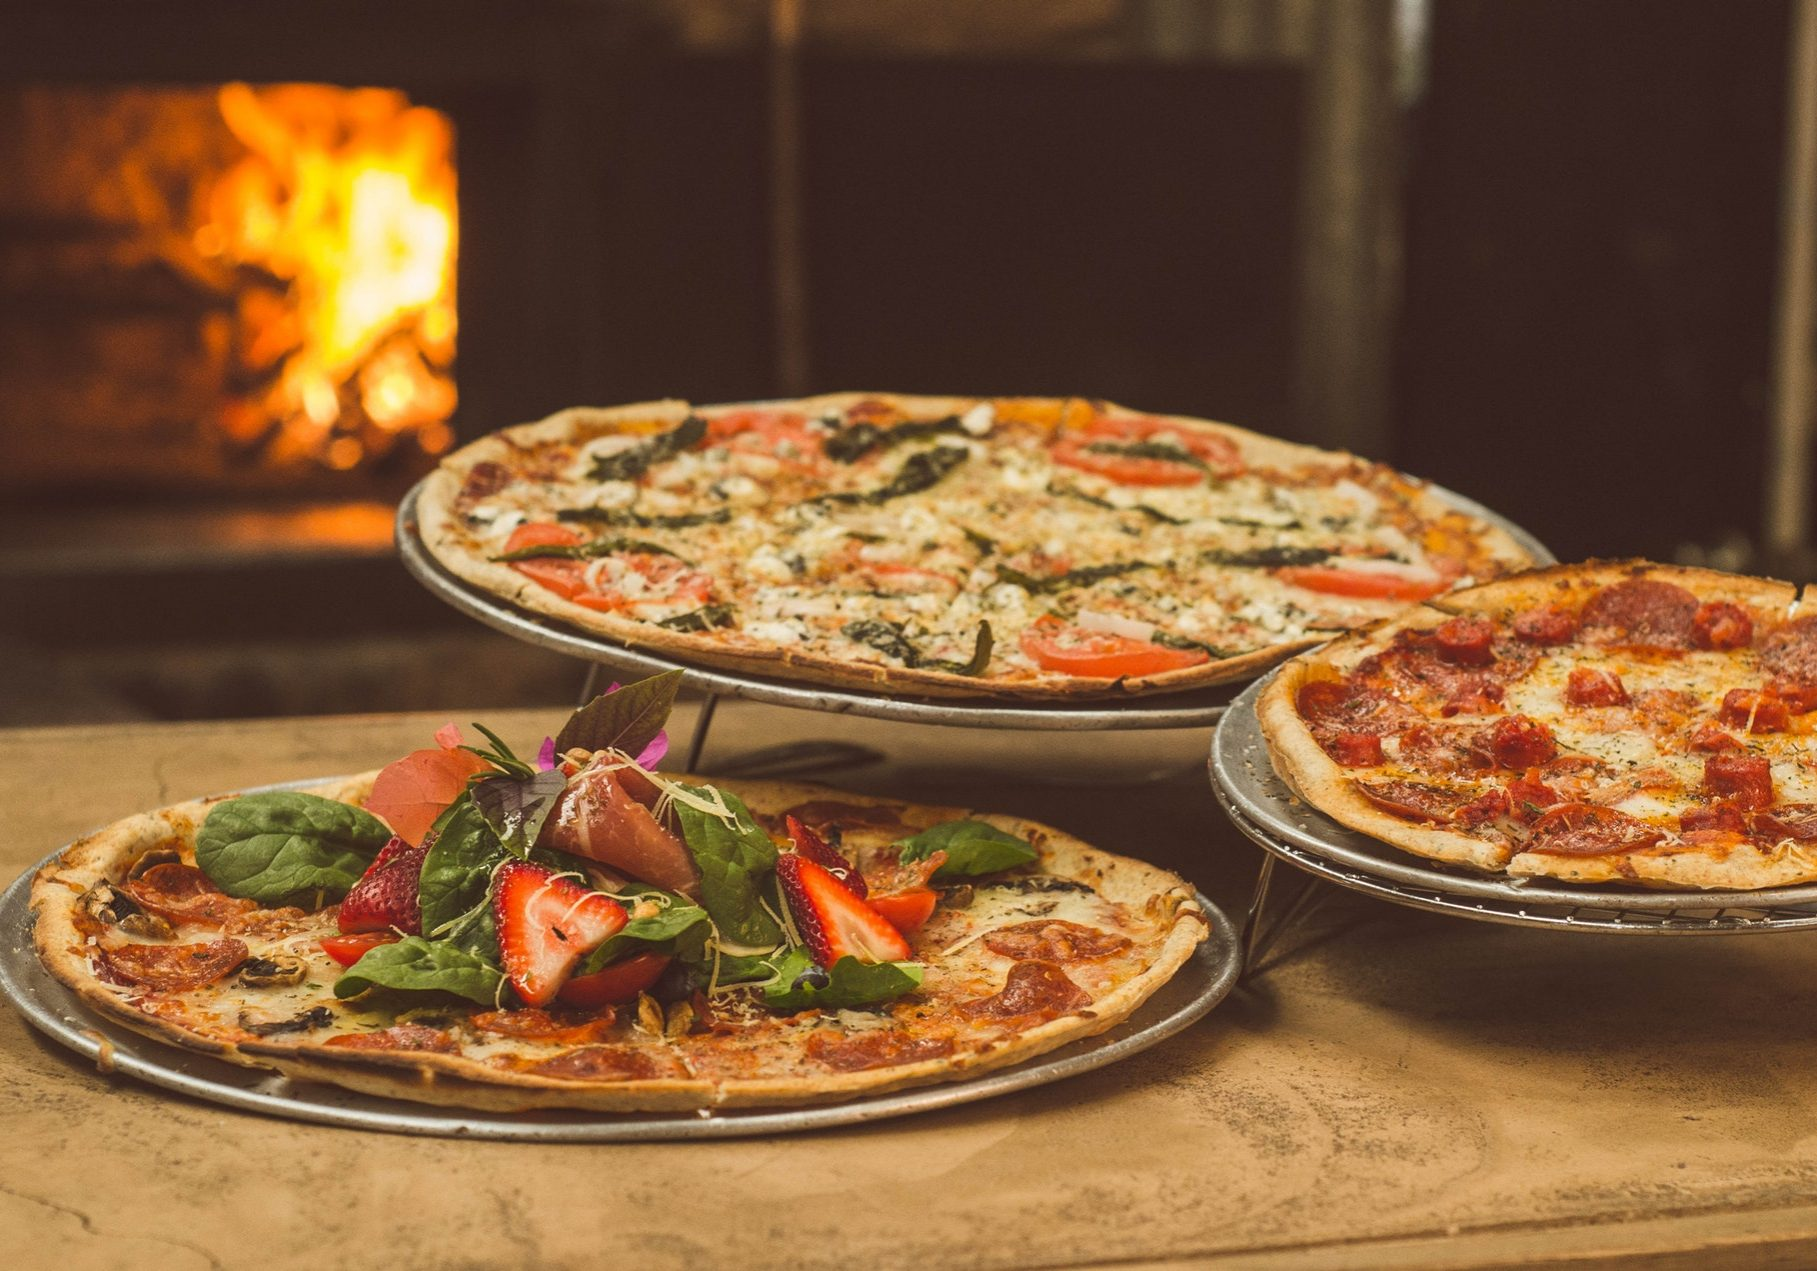 shallow-focus-photography-of-several-pizzas-1566837